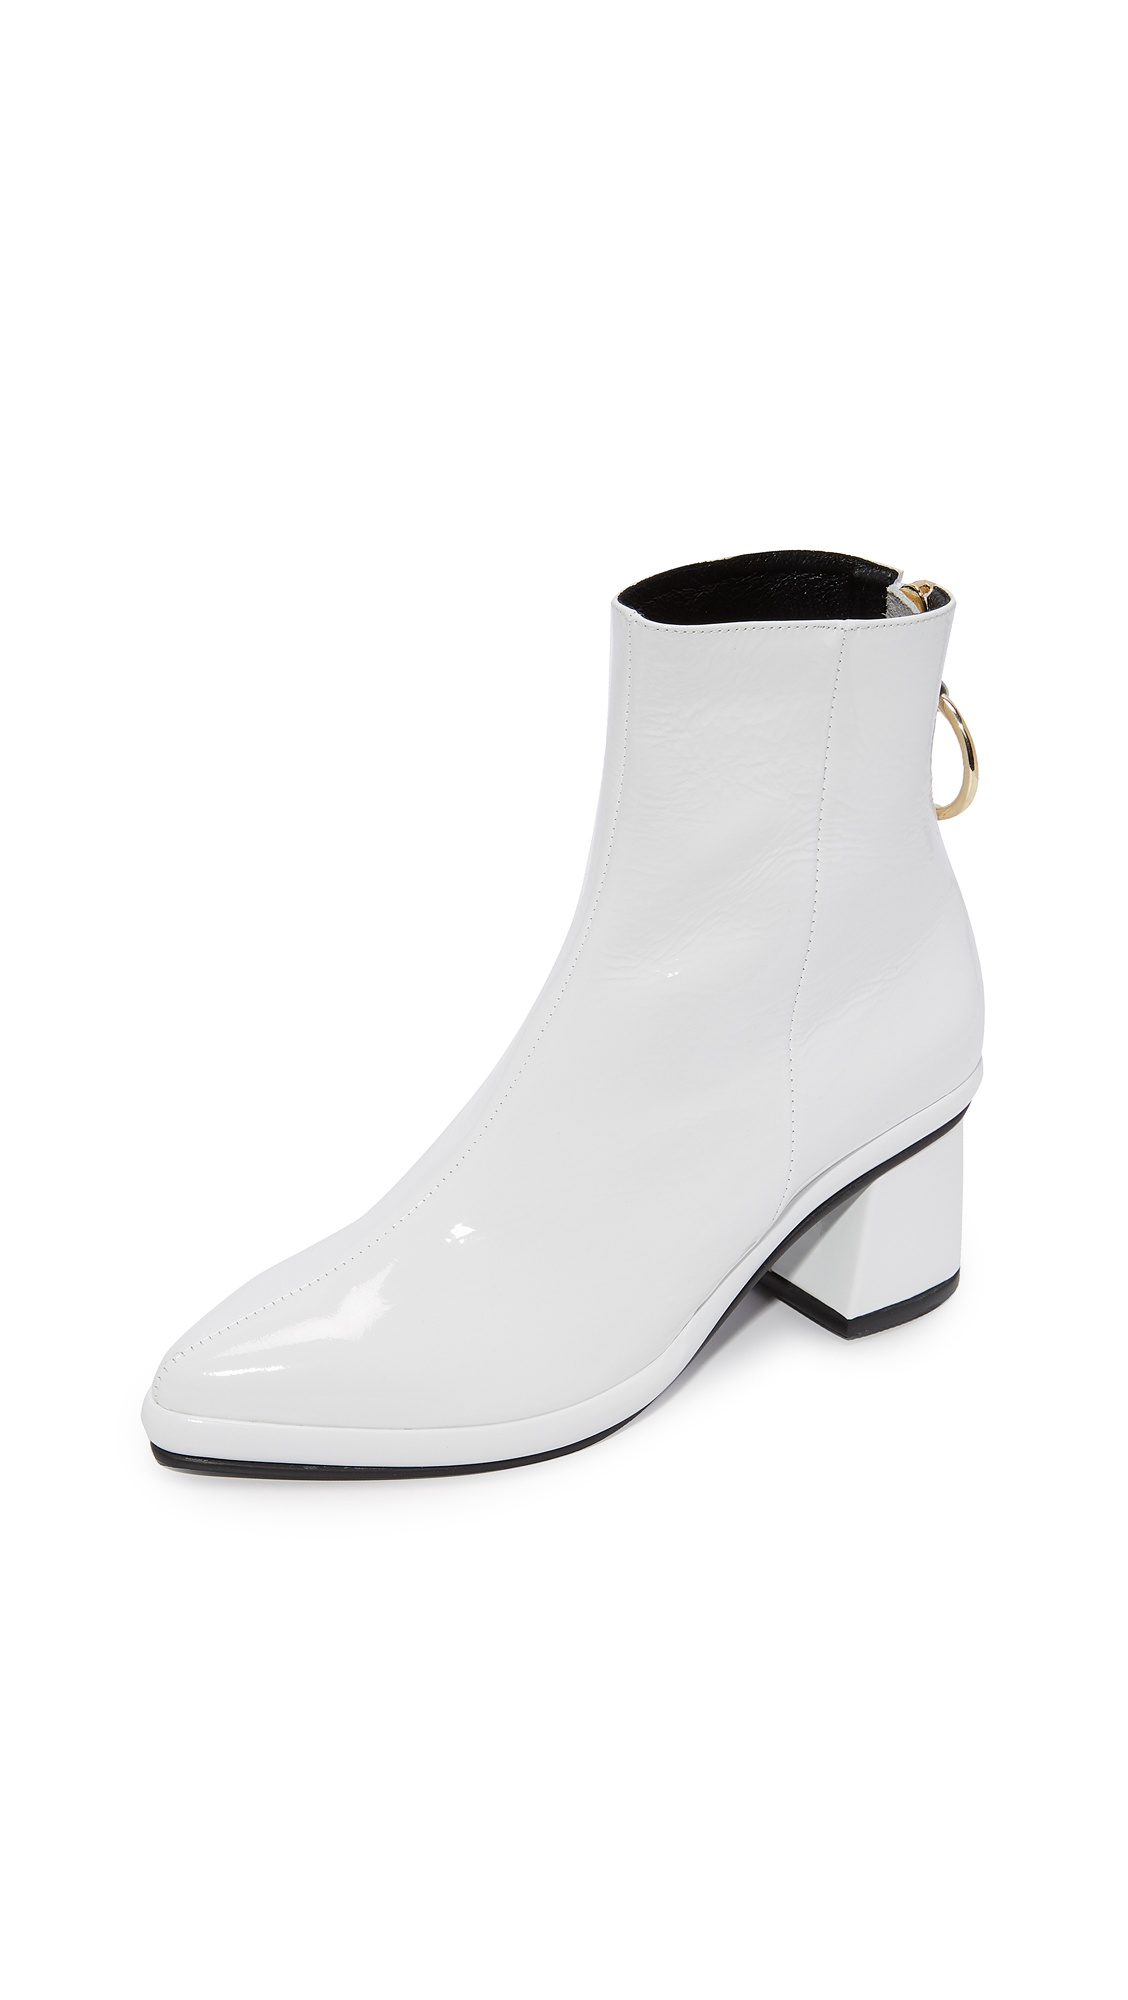 Reike Nen Ring Mid Booties - White